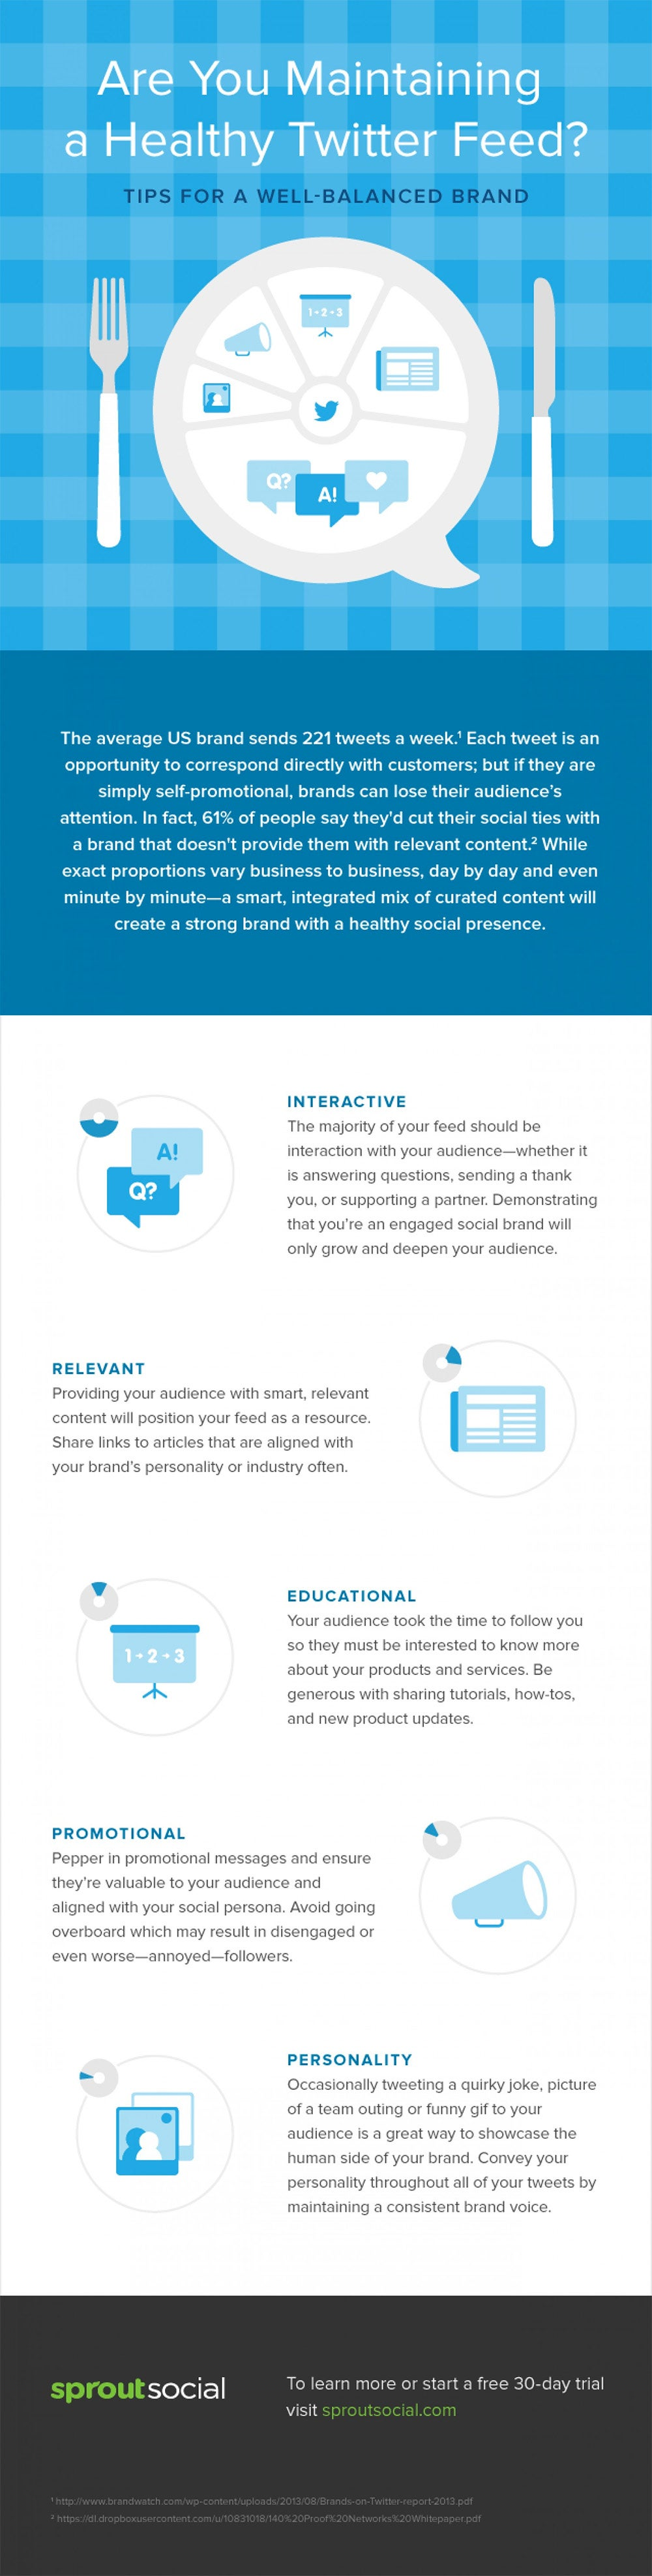 How to Maintain a Well-Balanced Twitter Feed (Infographic)